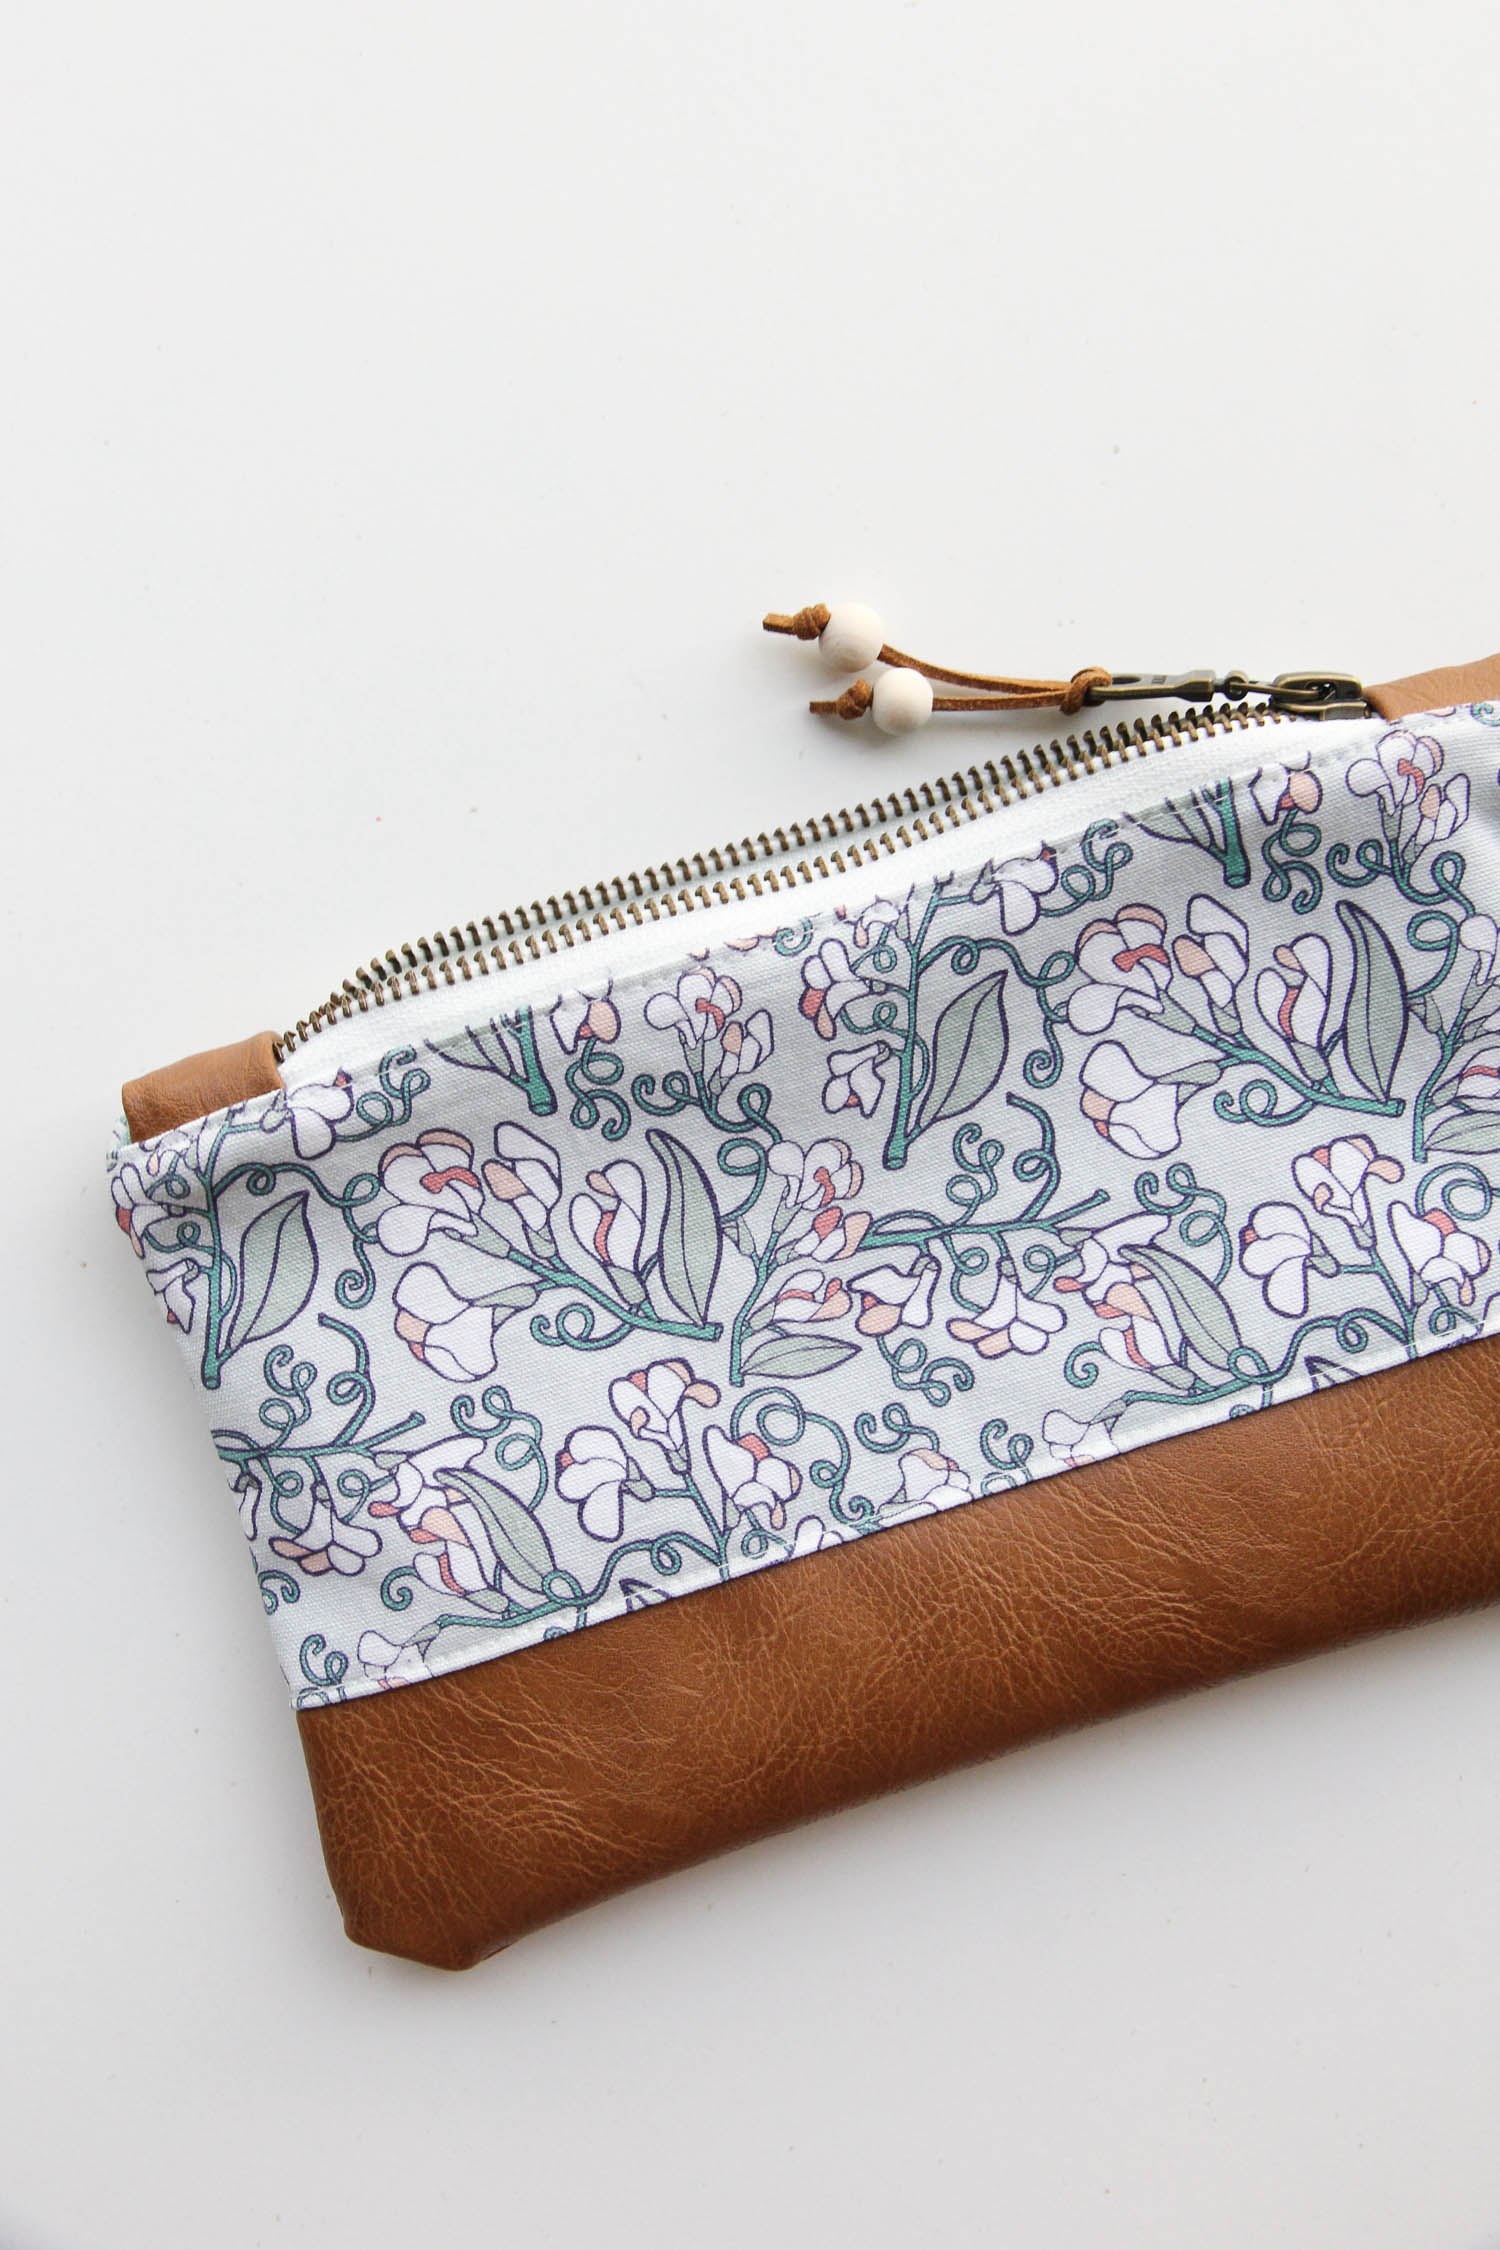 The  Wild Sweet Pea Zip Pouch